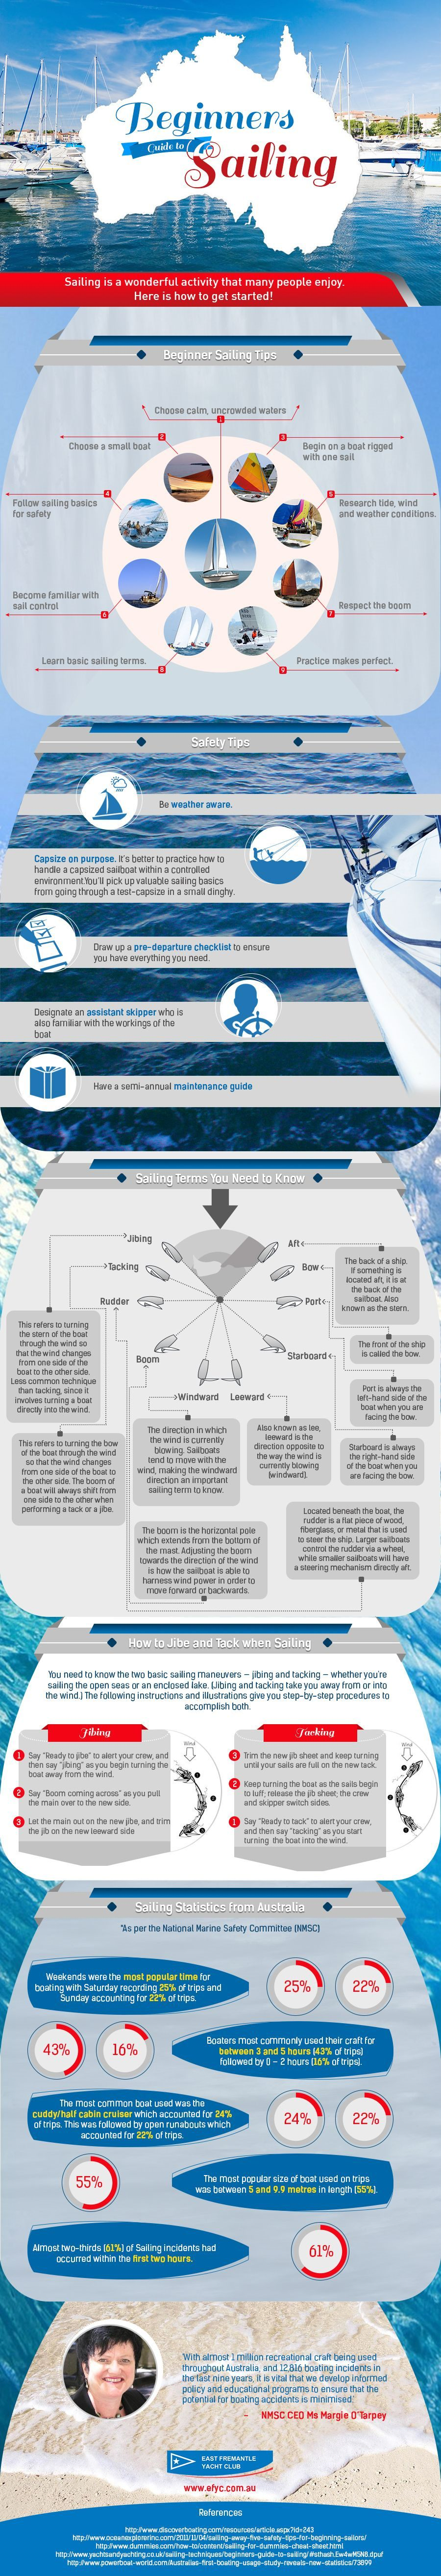 sailing for beginners infographic